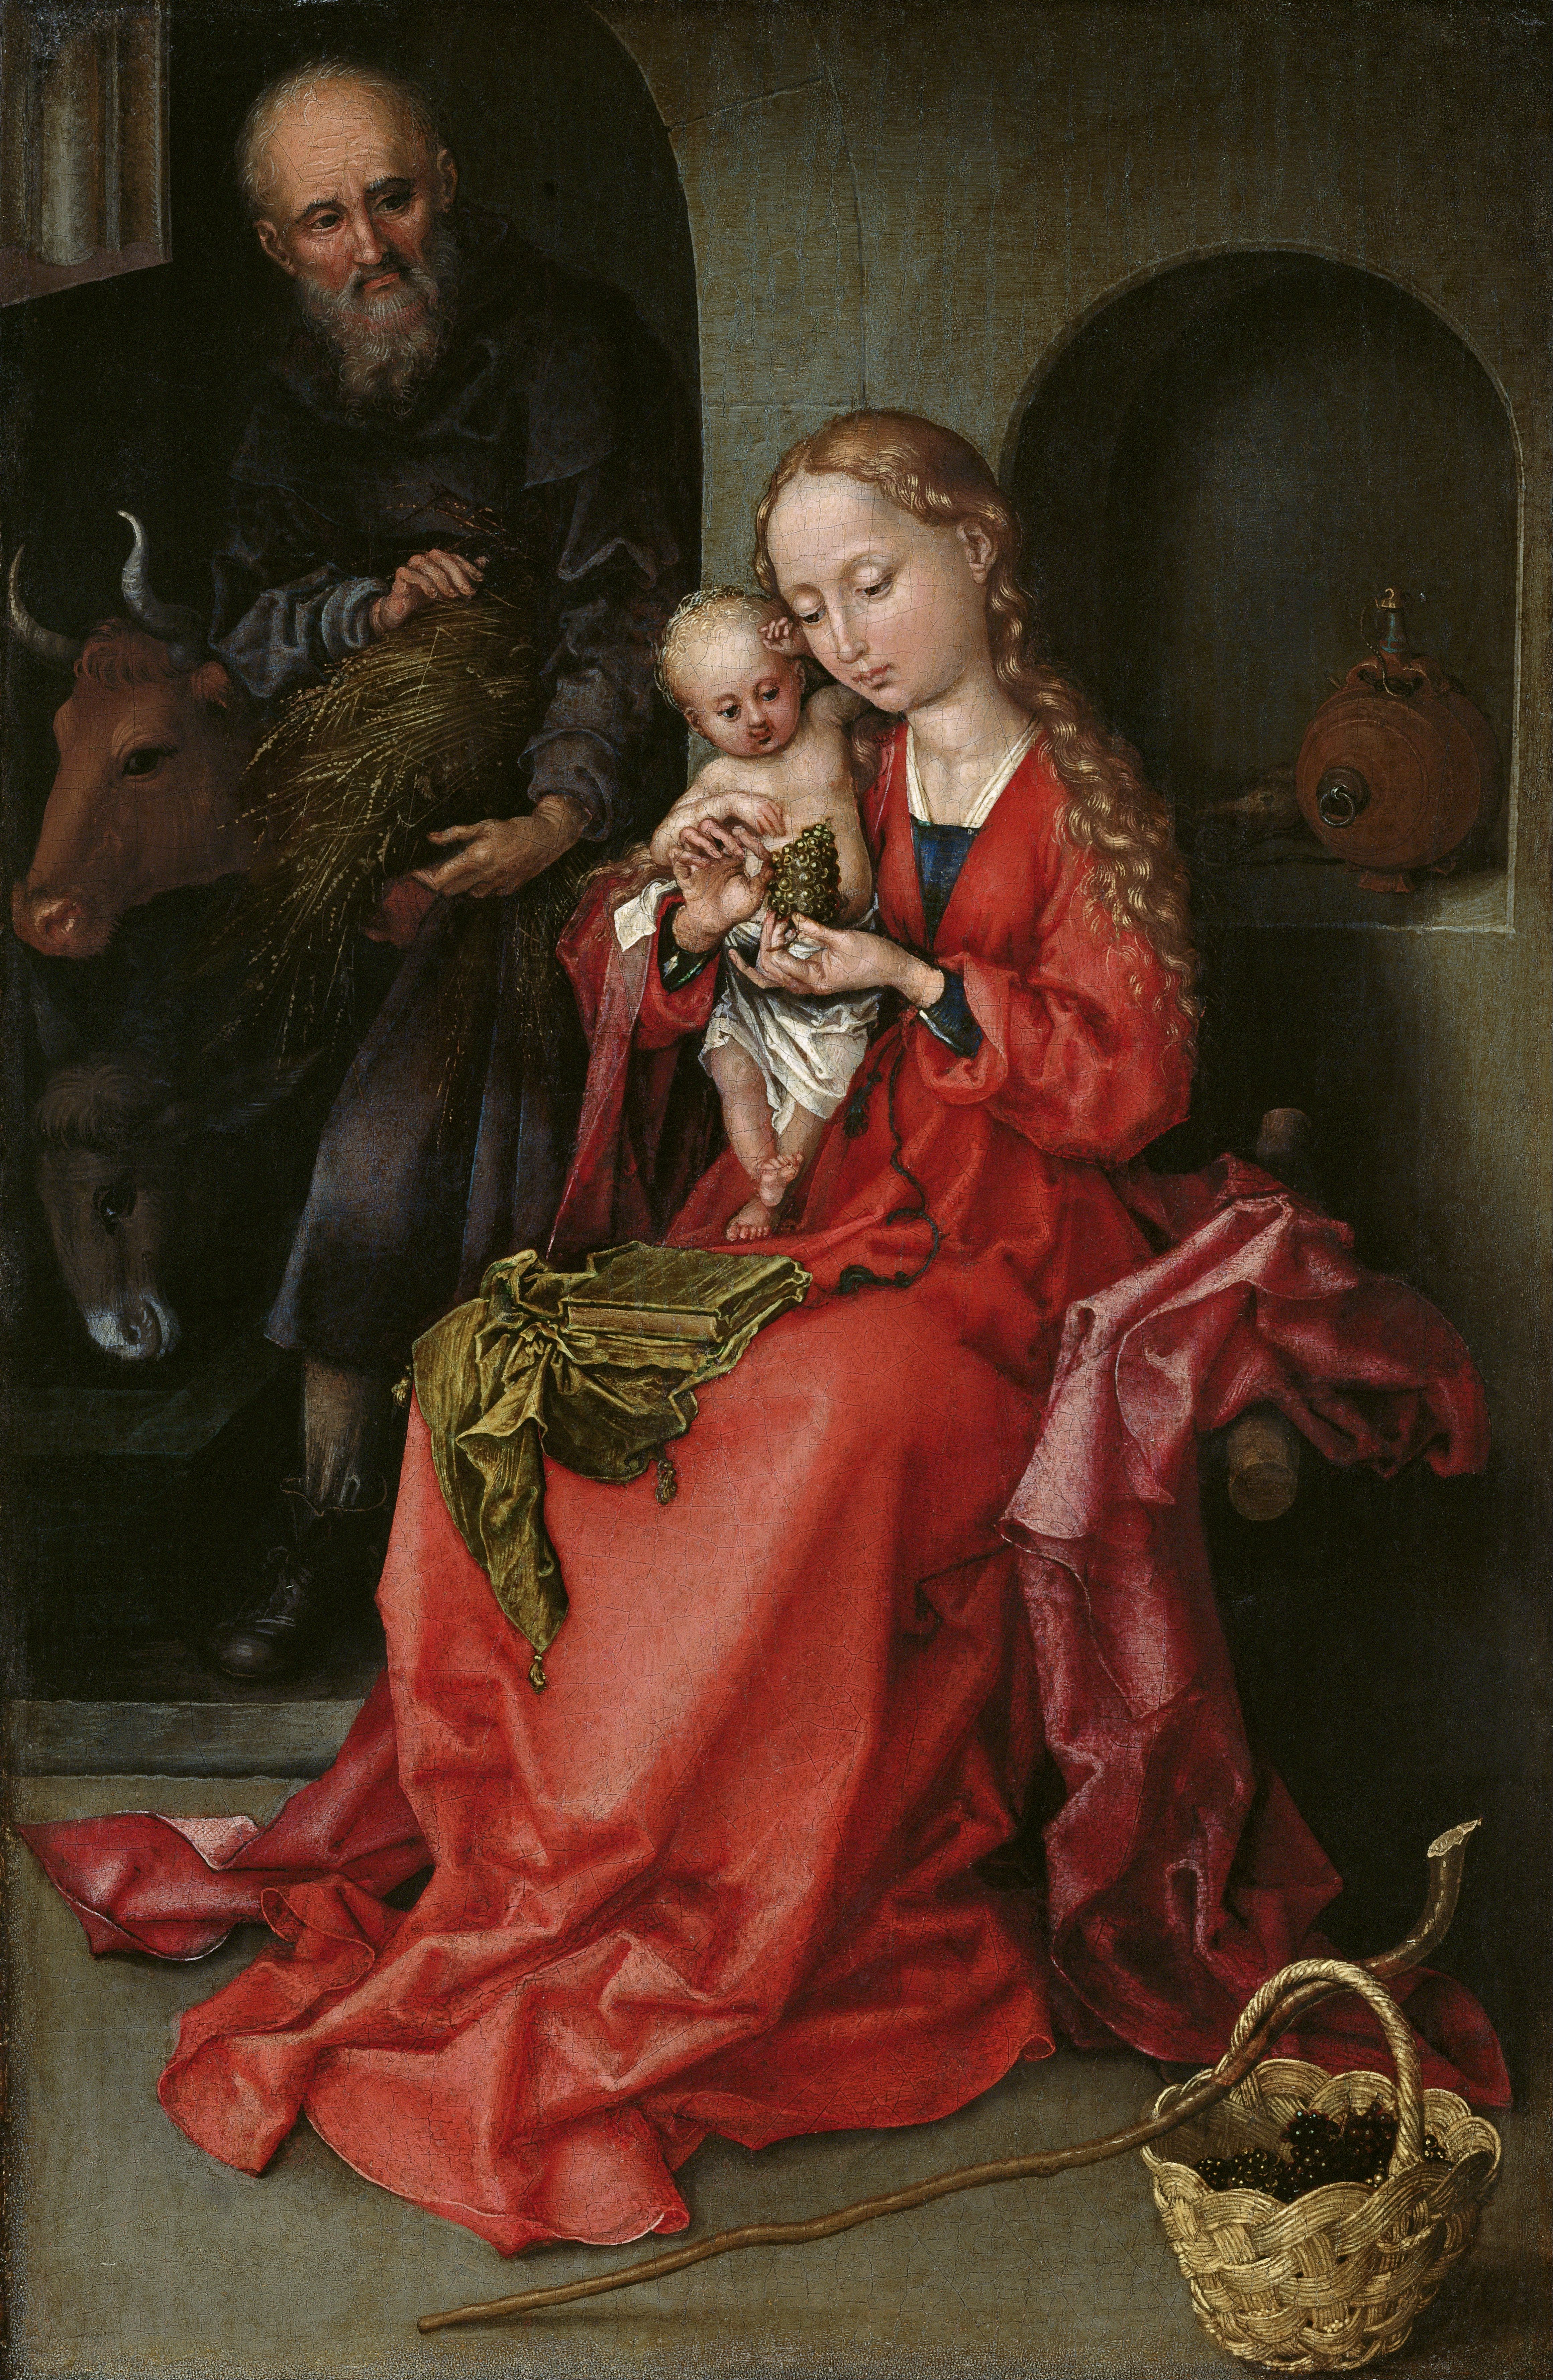 Martin Schongauer: The Holy Family. 1480-1490.